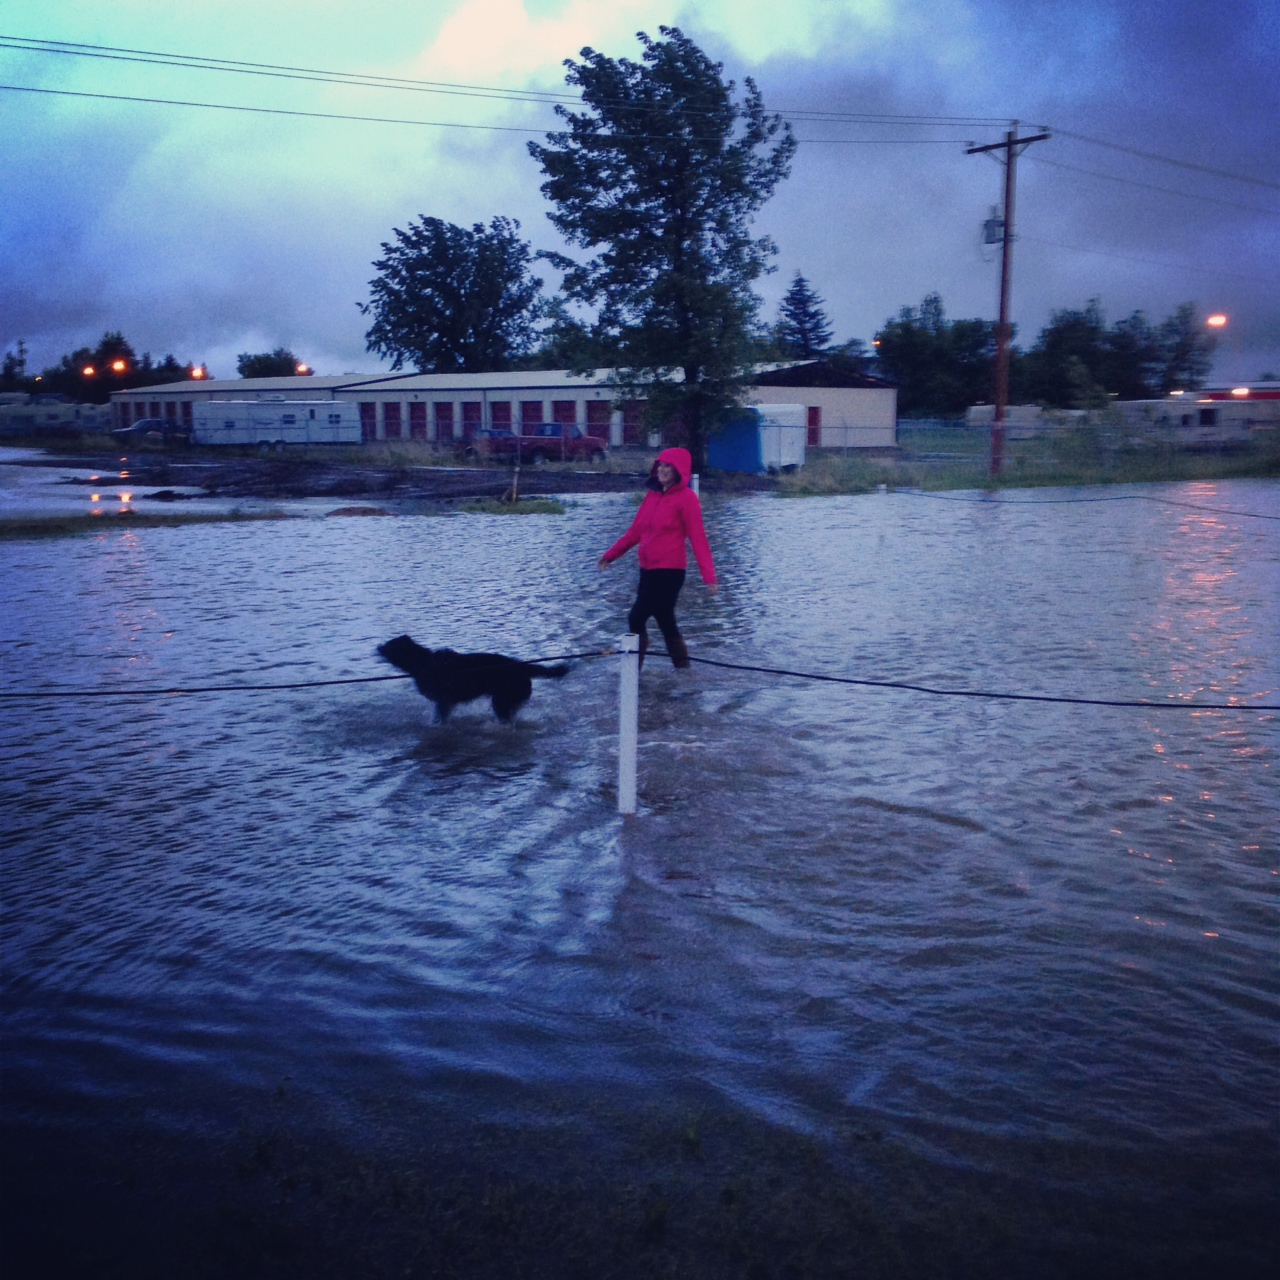 Walking my dog in a flood, no biggie